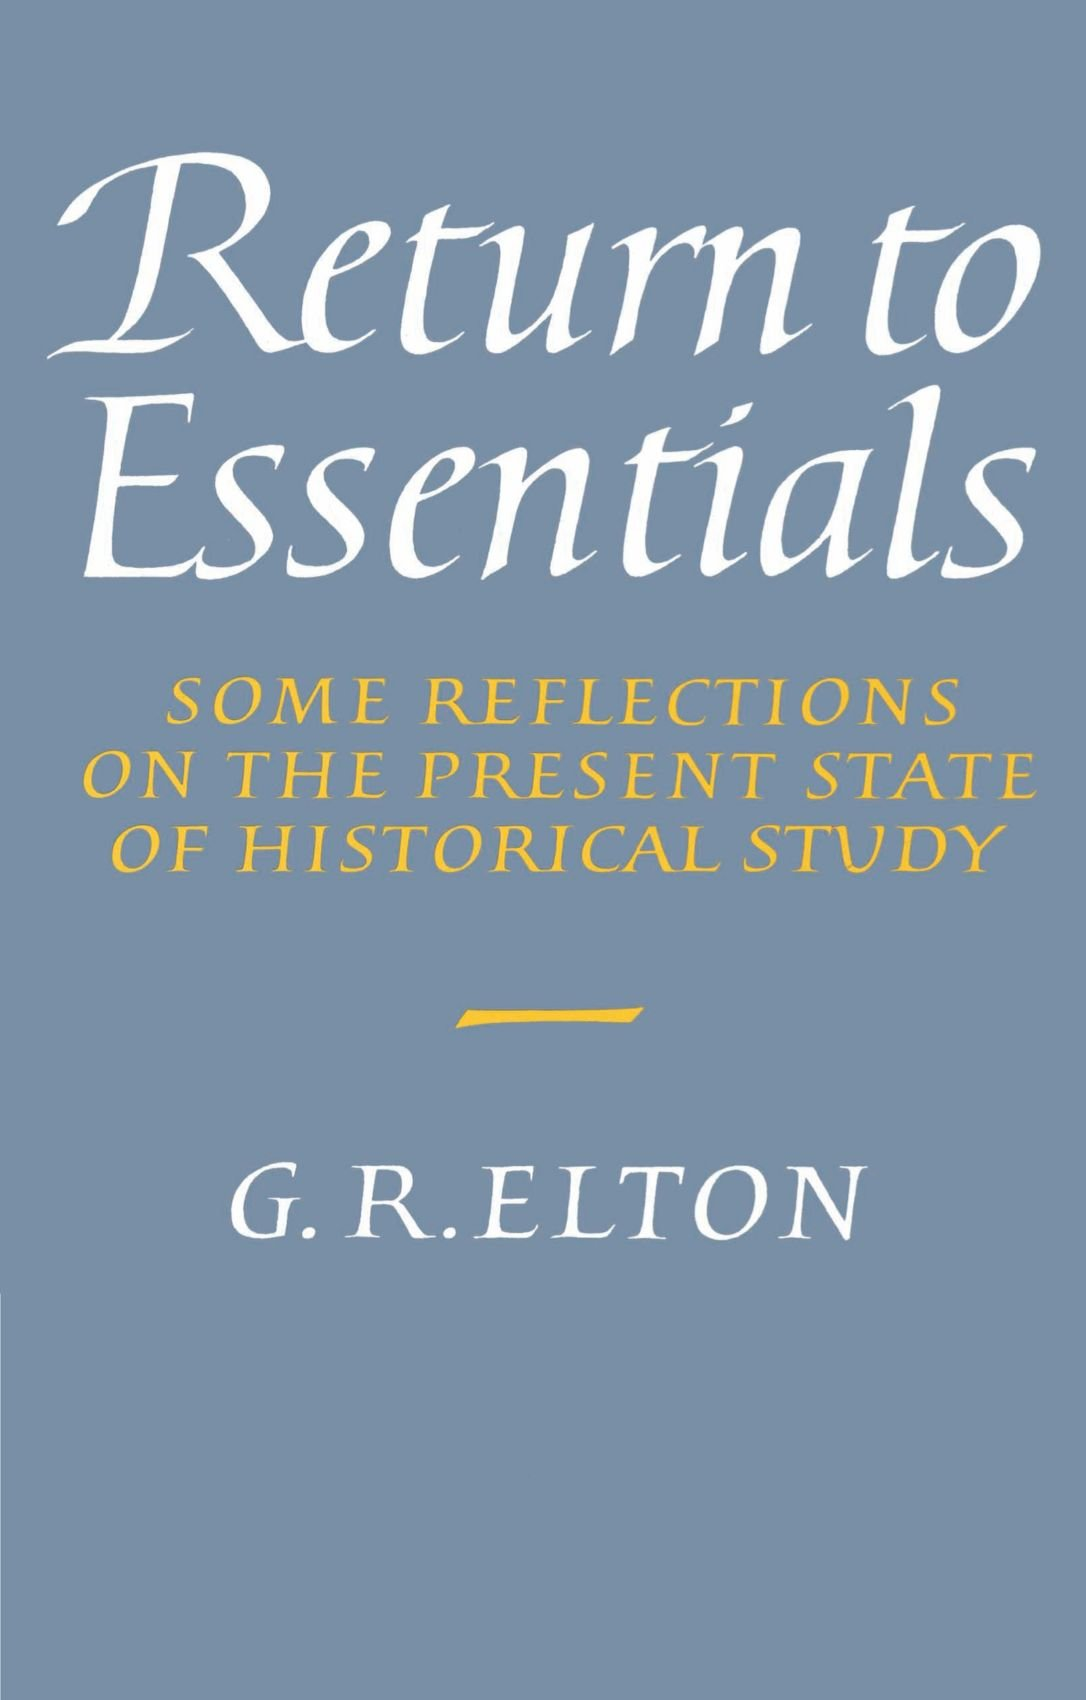 Return To Essentials Some Reflections On The Present State Of Historical Study Geoffrey Rudolph Elton 9780521524377 History Amazon Canada